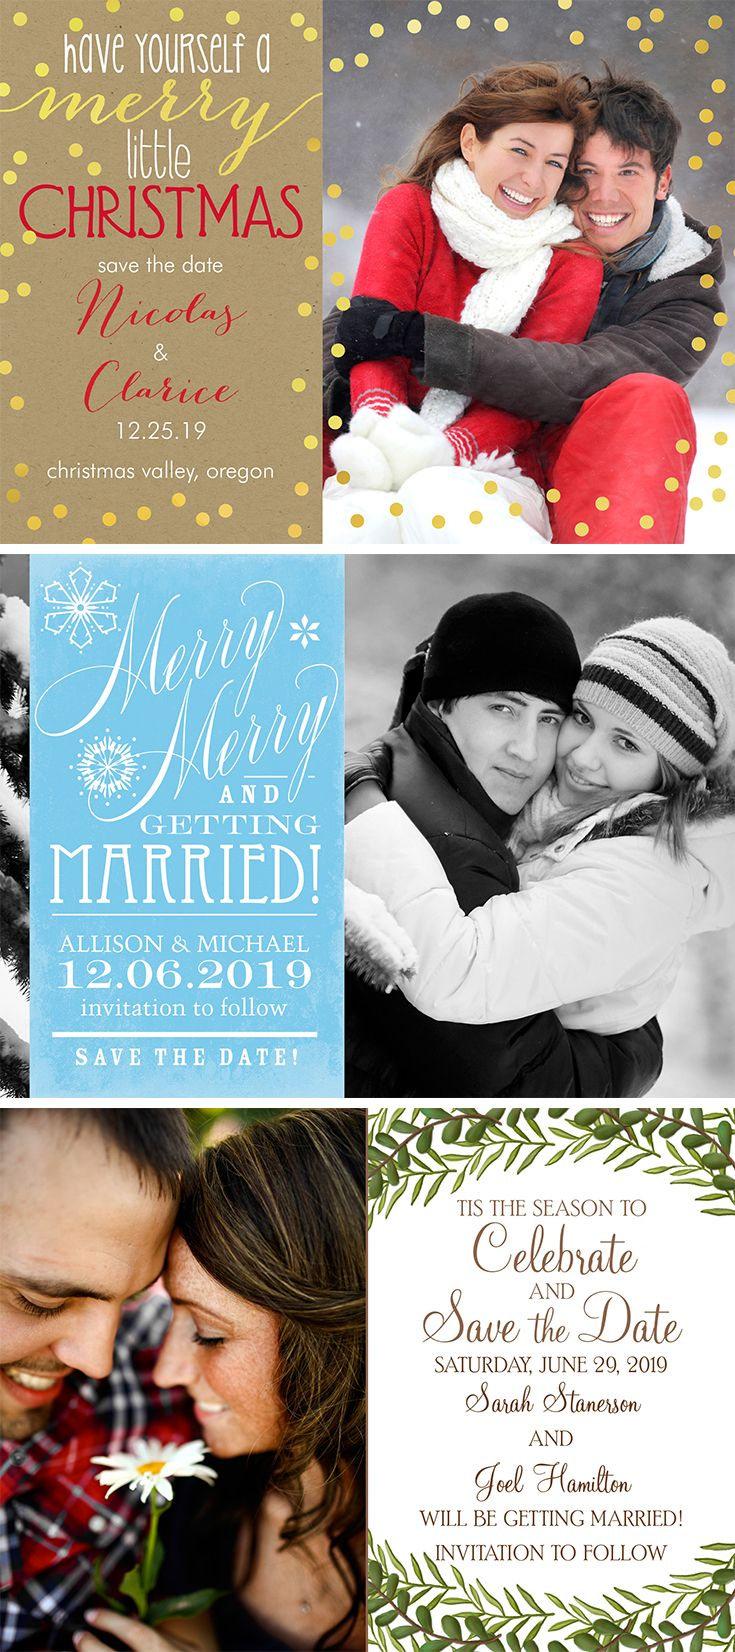 holiday themed save the dates christmassavethedates winter